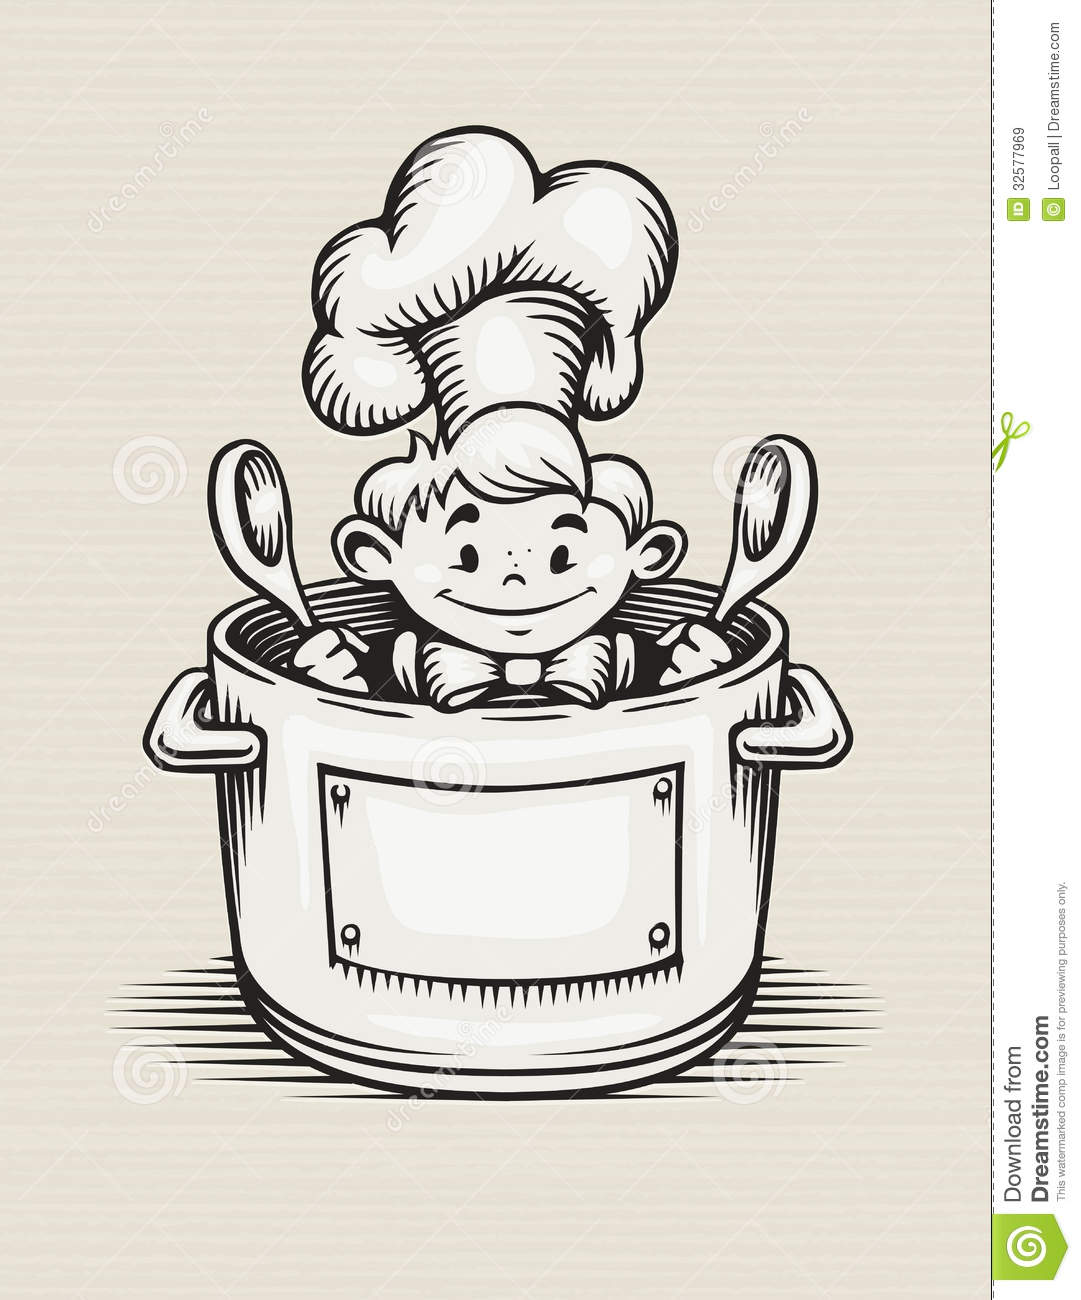 smiling boy cooking in the kitchen royalty free stock